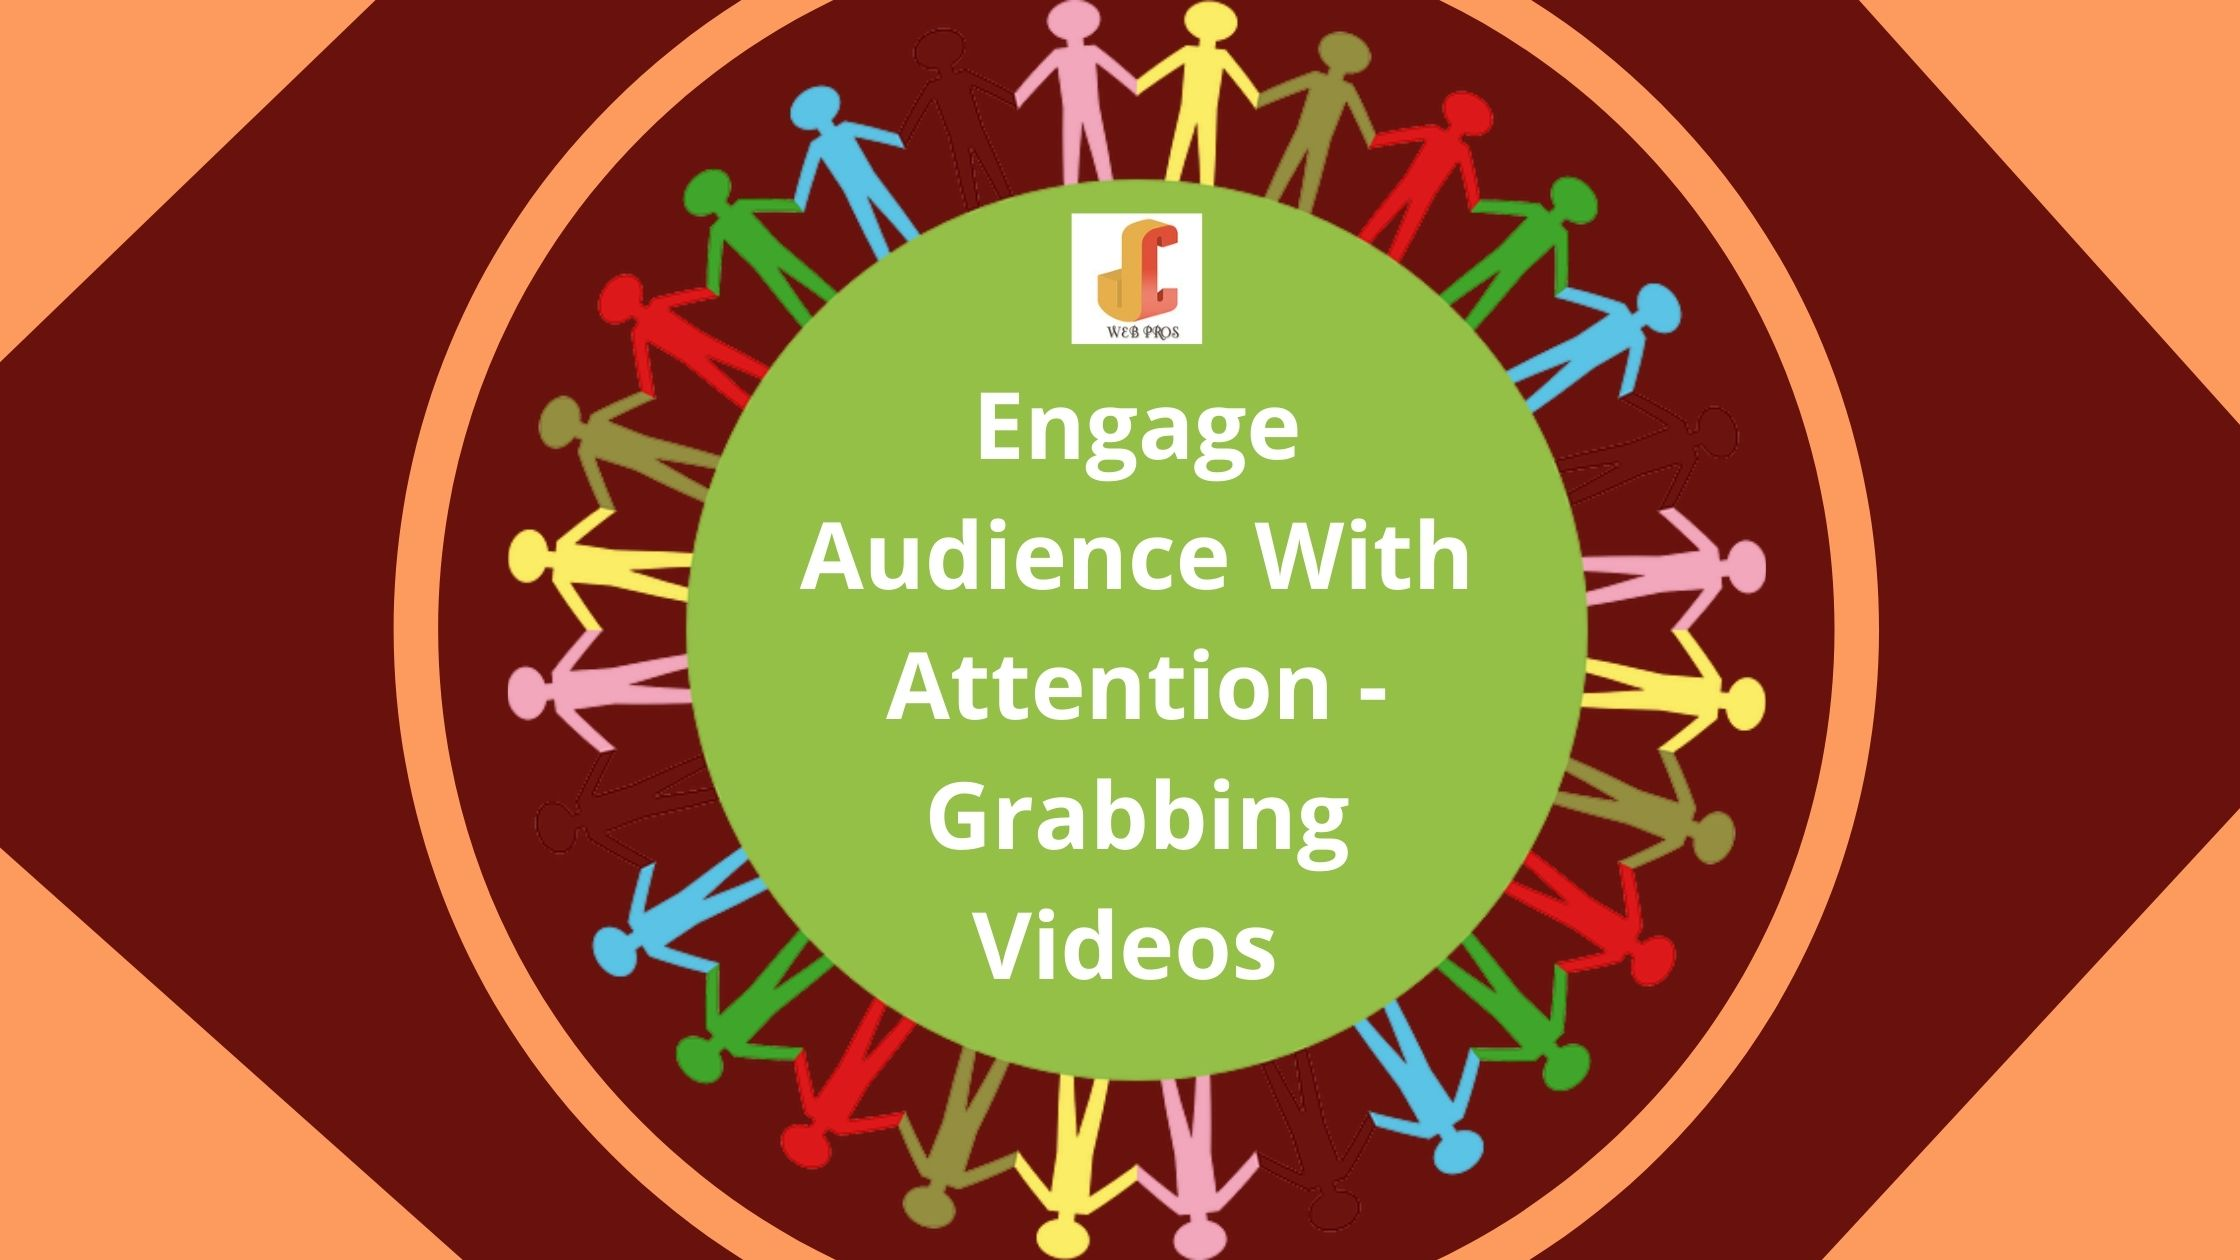 Engage Audience With Attention-Grabbing Videos